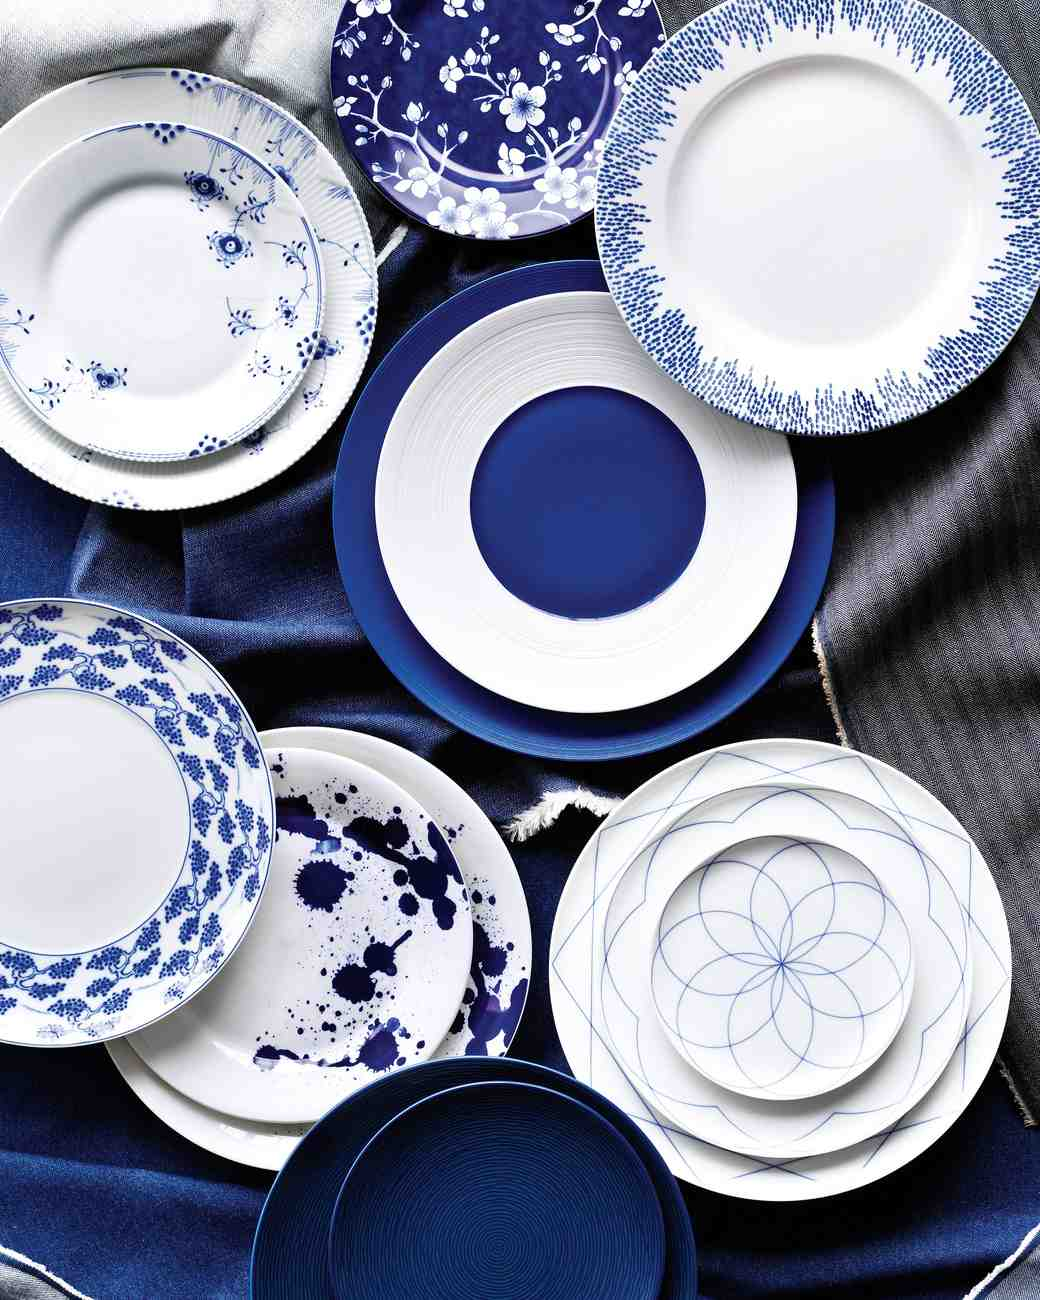 6 Fashion Forward Dishware Sets To Inspire Your Registry